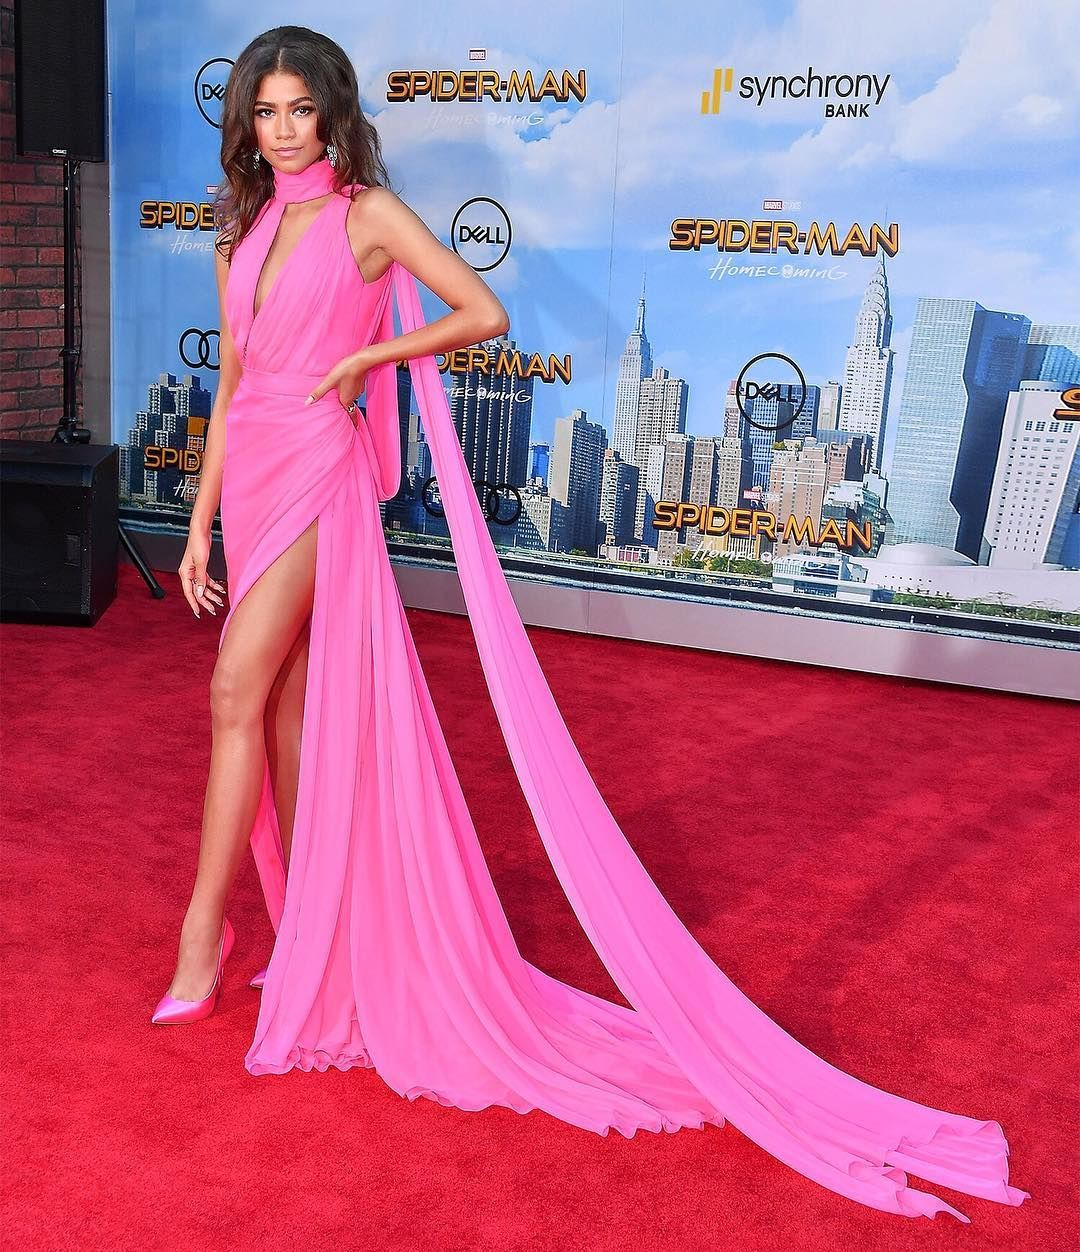 Pin by agostina on goals pinterest elegant dresses zendaya and